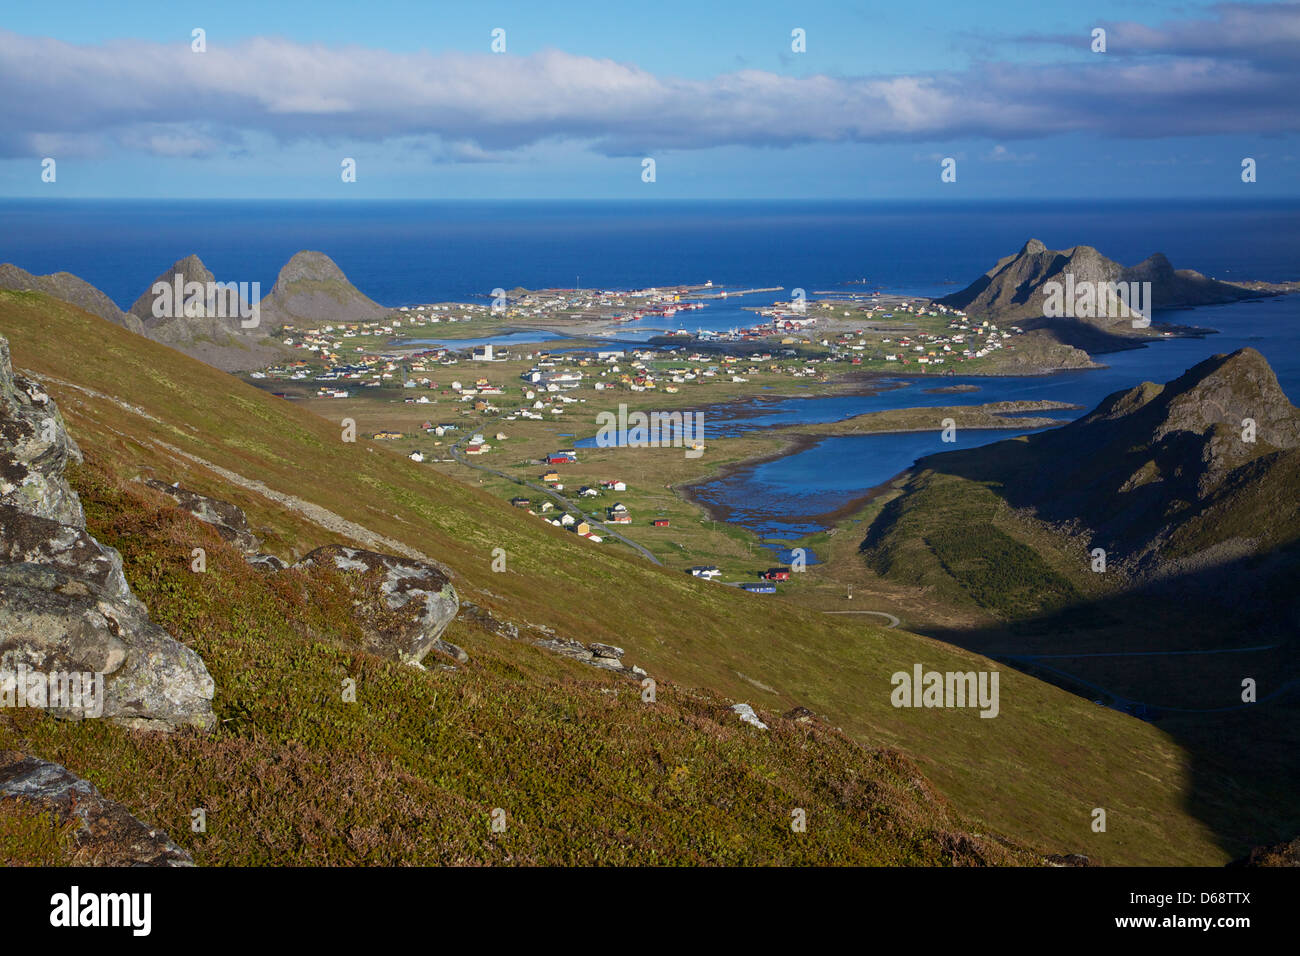 Scenic fishing port of Sorland on Lofoten islands in Norway during sunny summer day - Stock Image